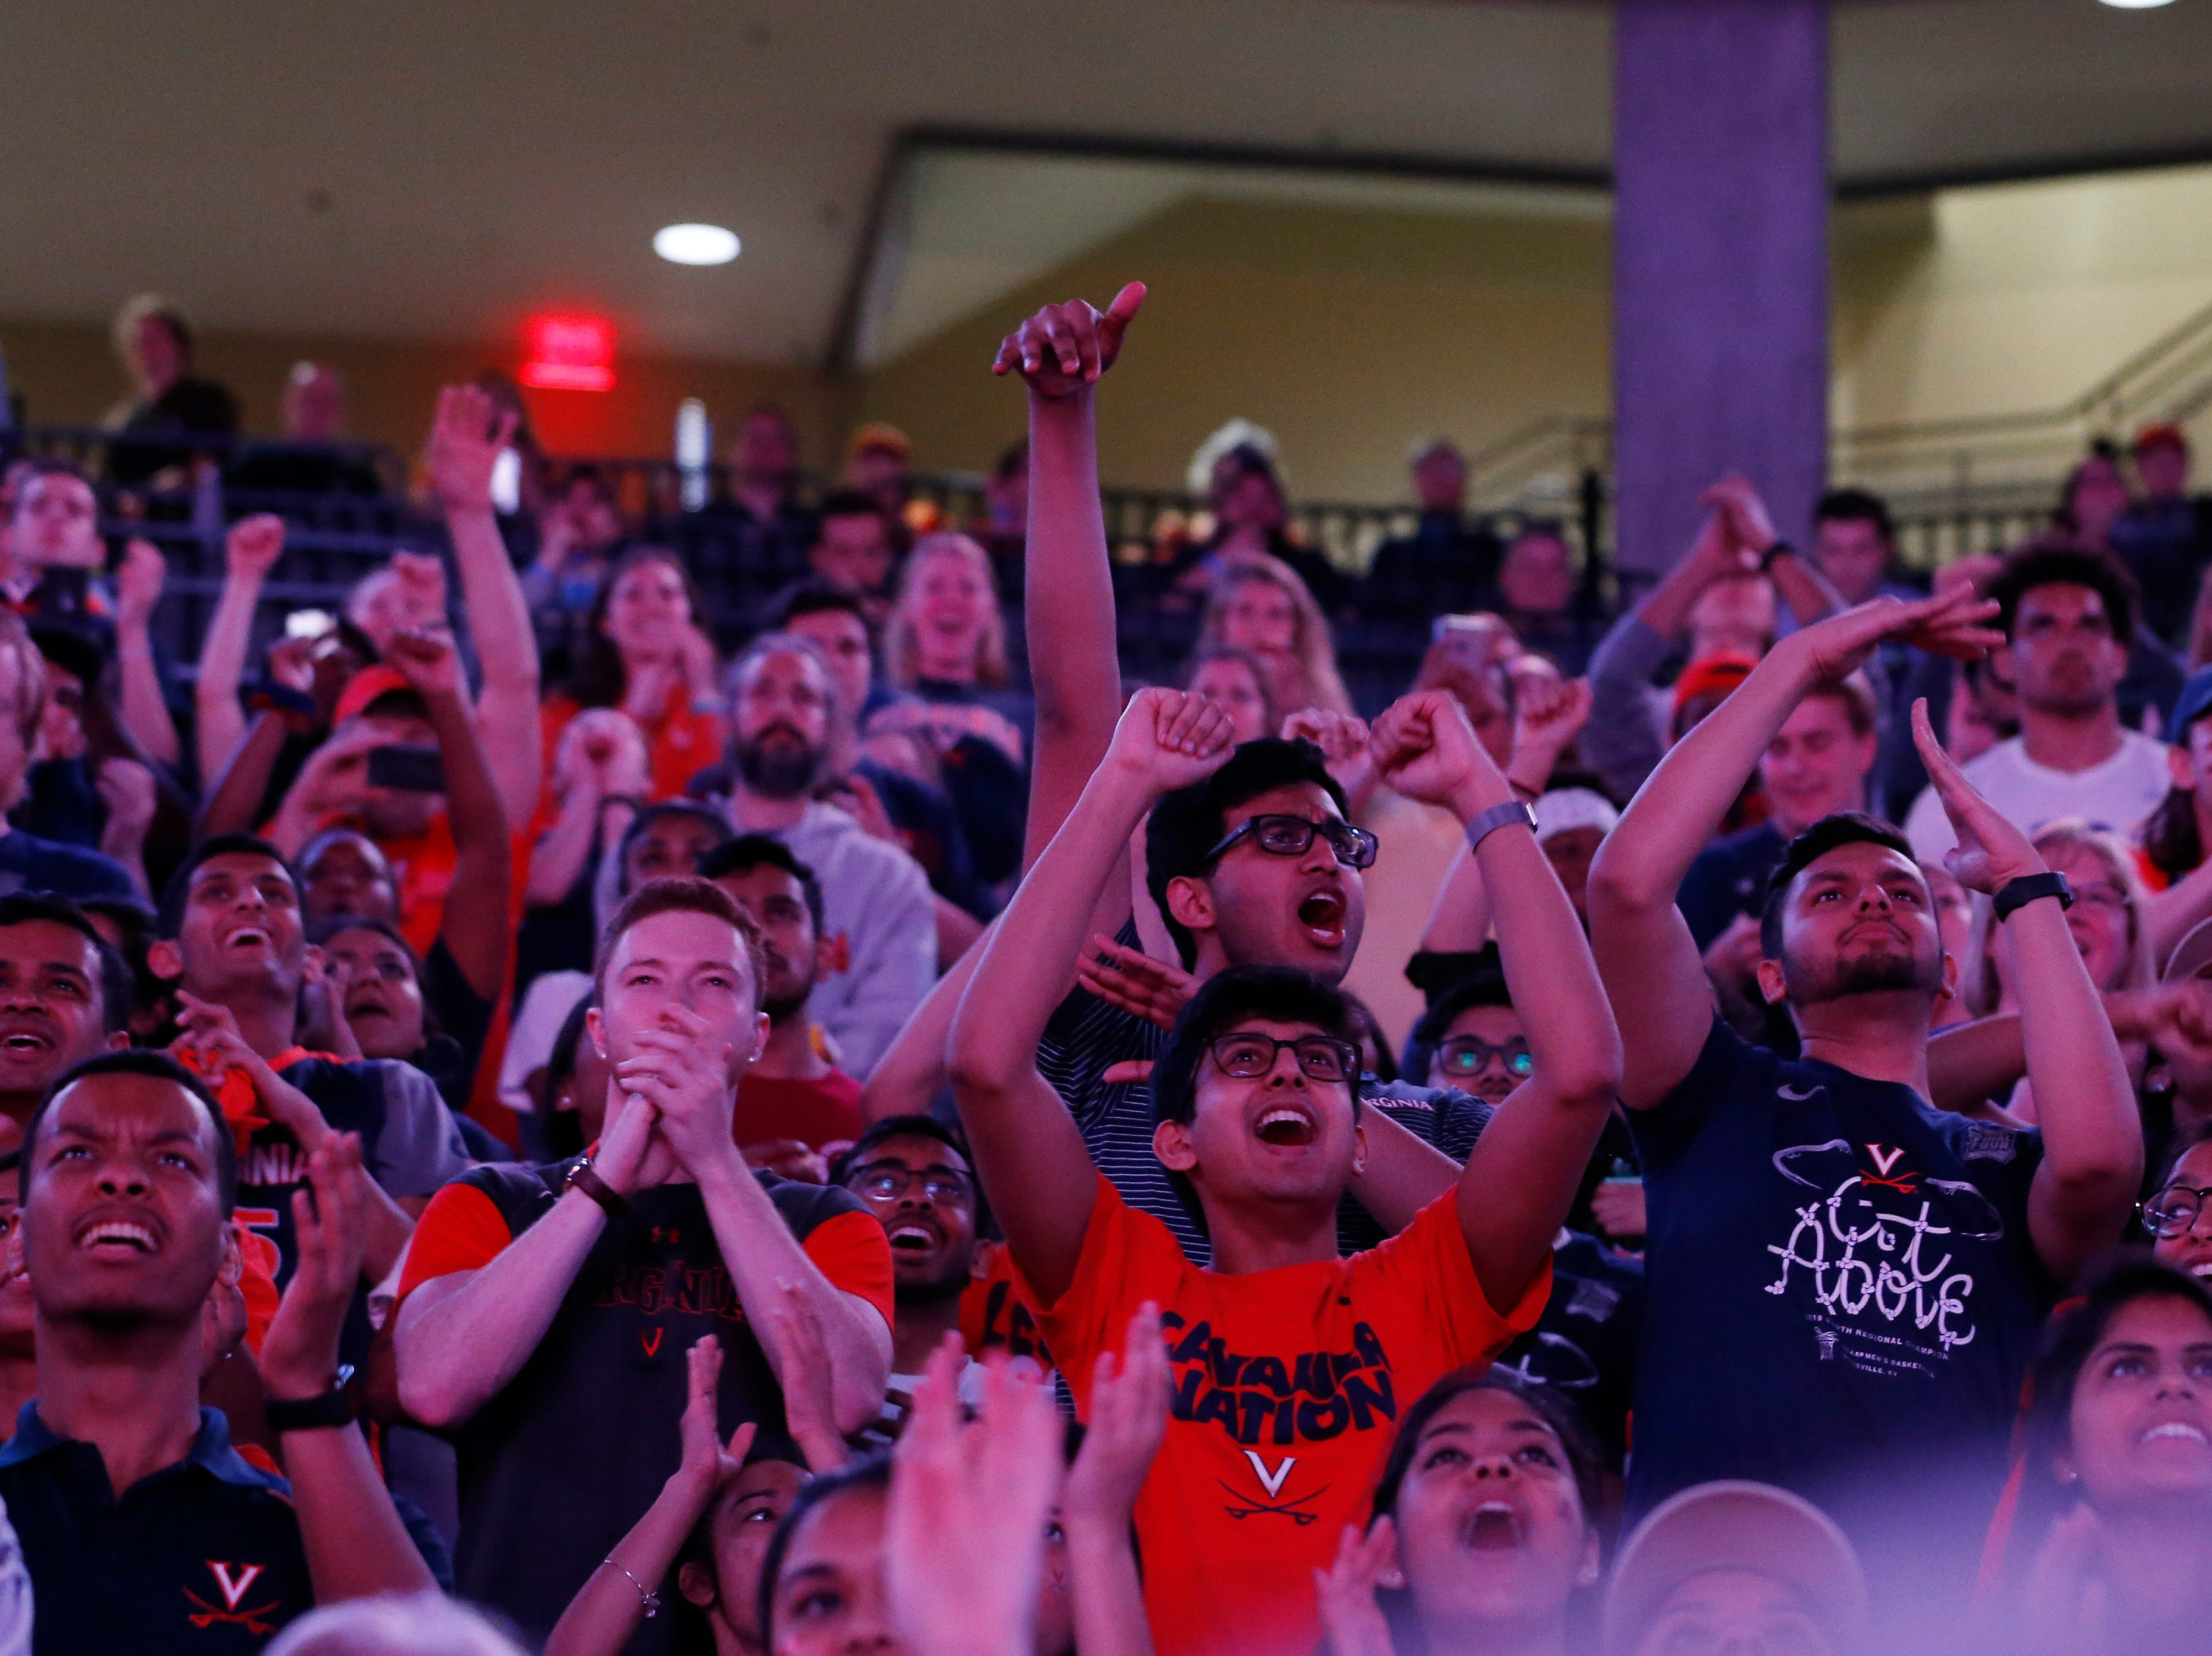 Apr 8, 2019; Charlottesville, VA, USA; Fans react during a viewing party at John Paul Jones Arena for the the championship game of the 2019 men's Final Four between the Texas Tech Red Raiders and the Virginia Cavaliers. Mandatory Credit: Geoff Burke-USA TODAY Sports